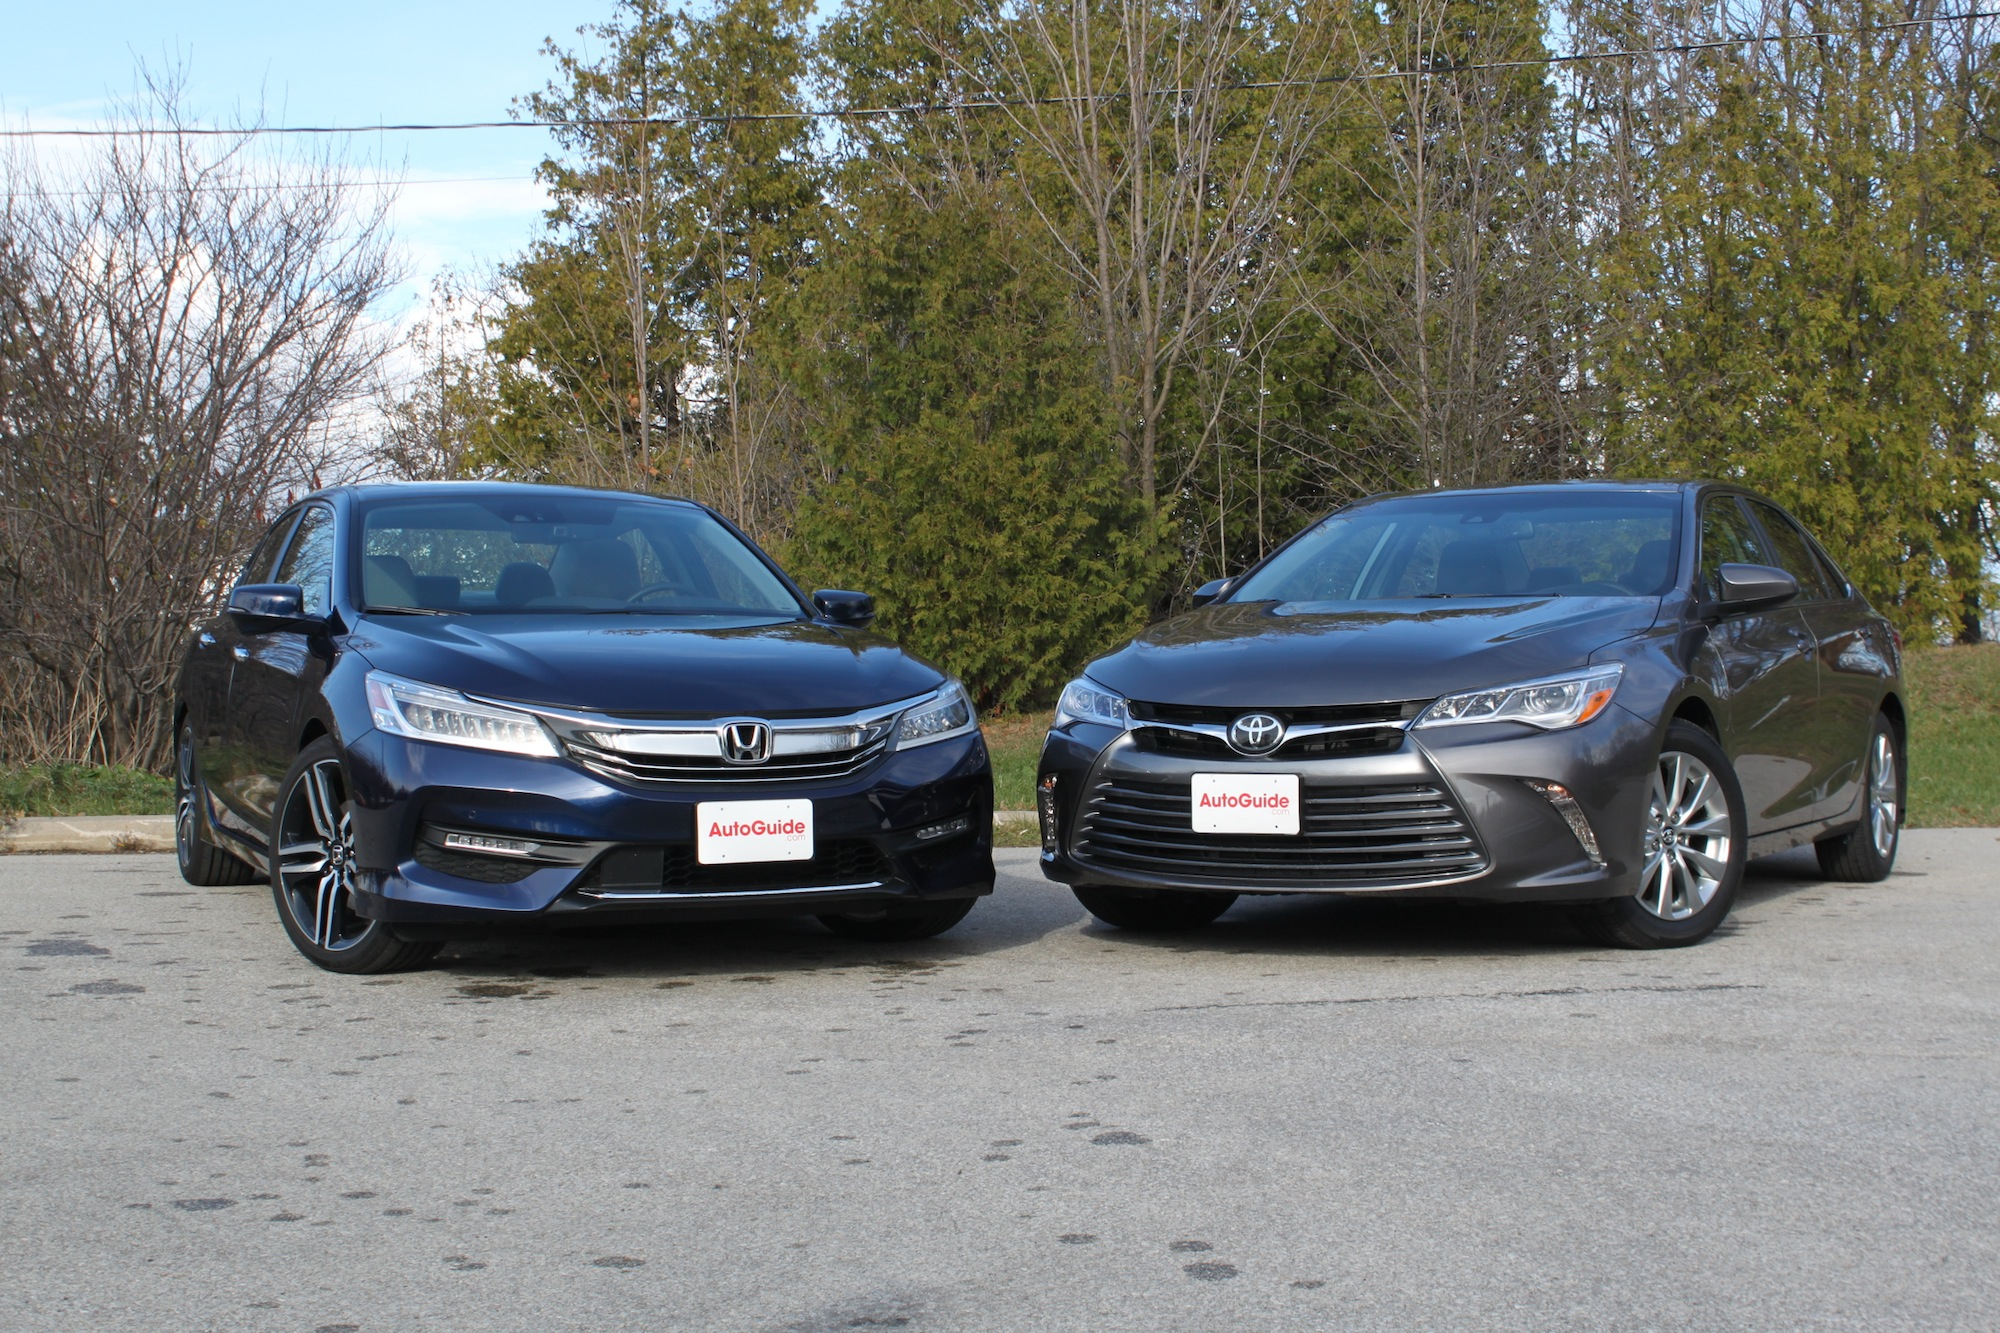 Accord Vs Camry >> 2016 Honda Accord Vs 2016 Toyota Camry Autoguide Com